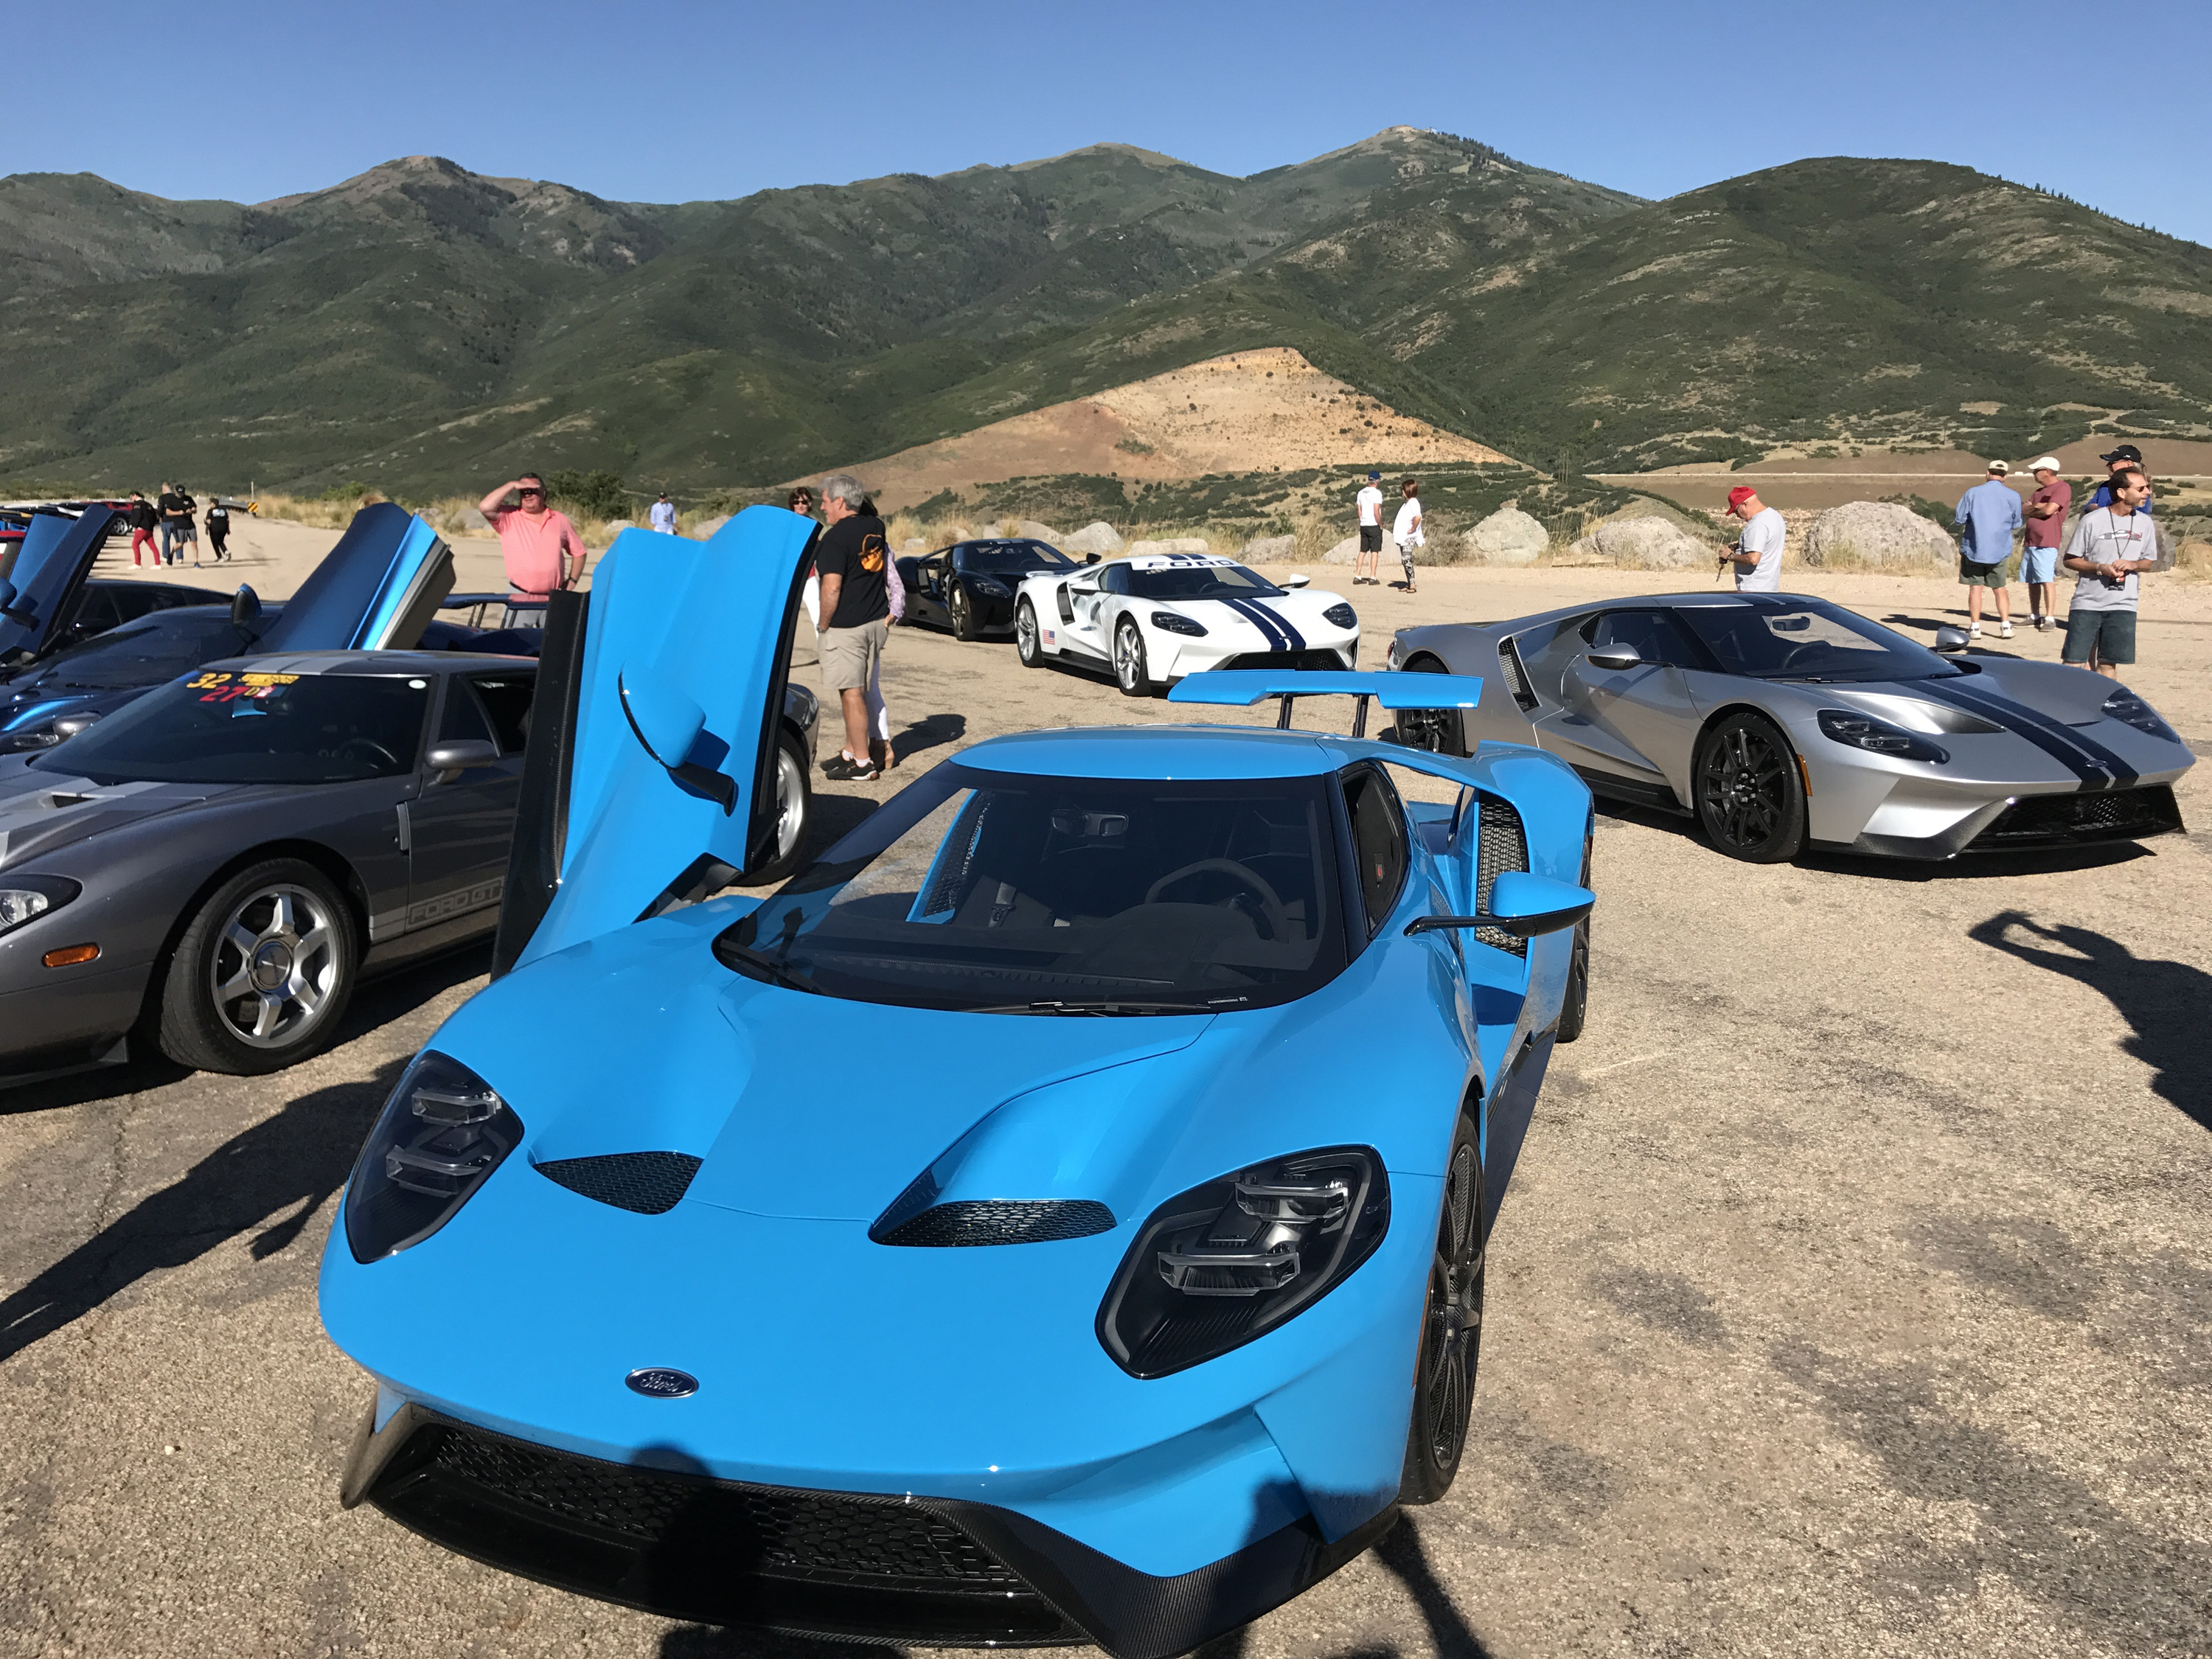 Ford GT Owners Rally 12 Parked